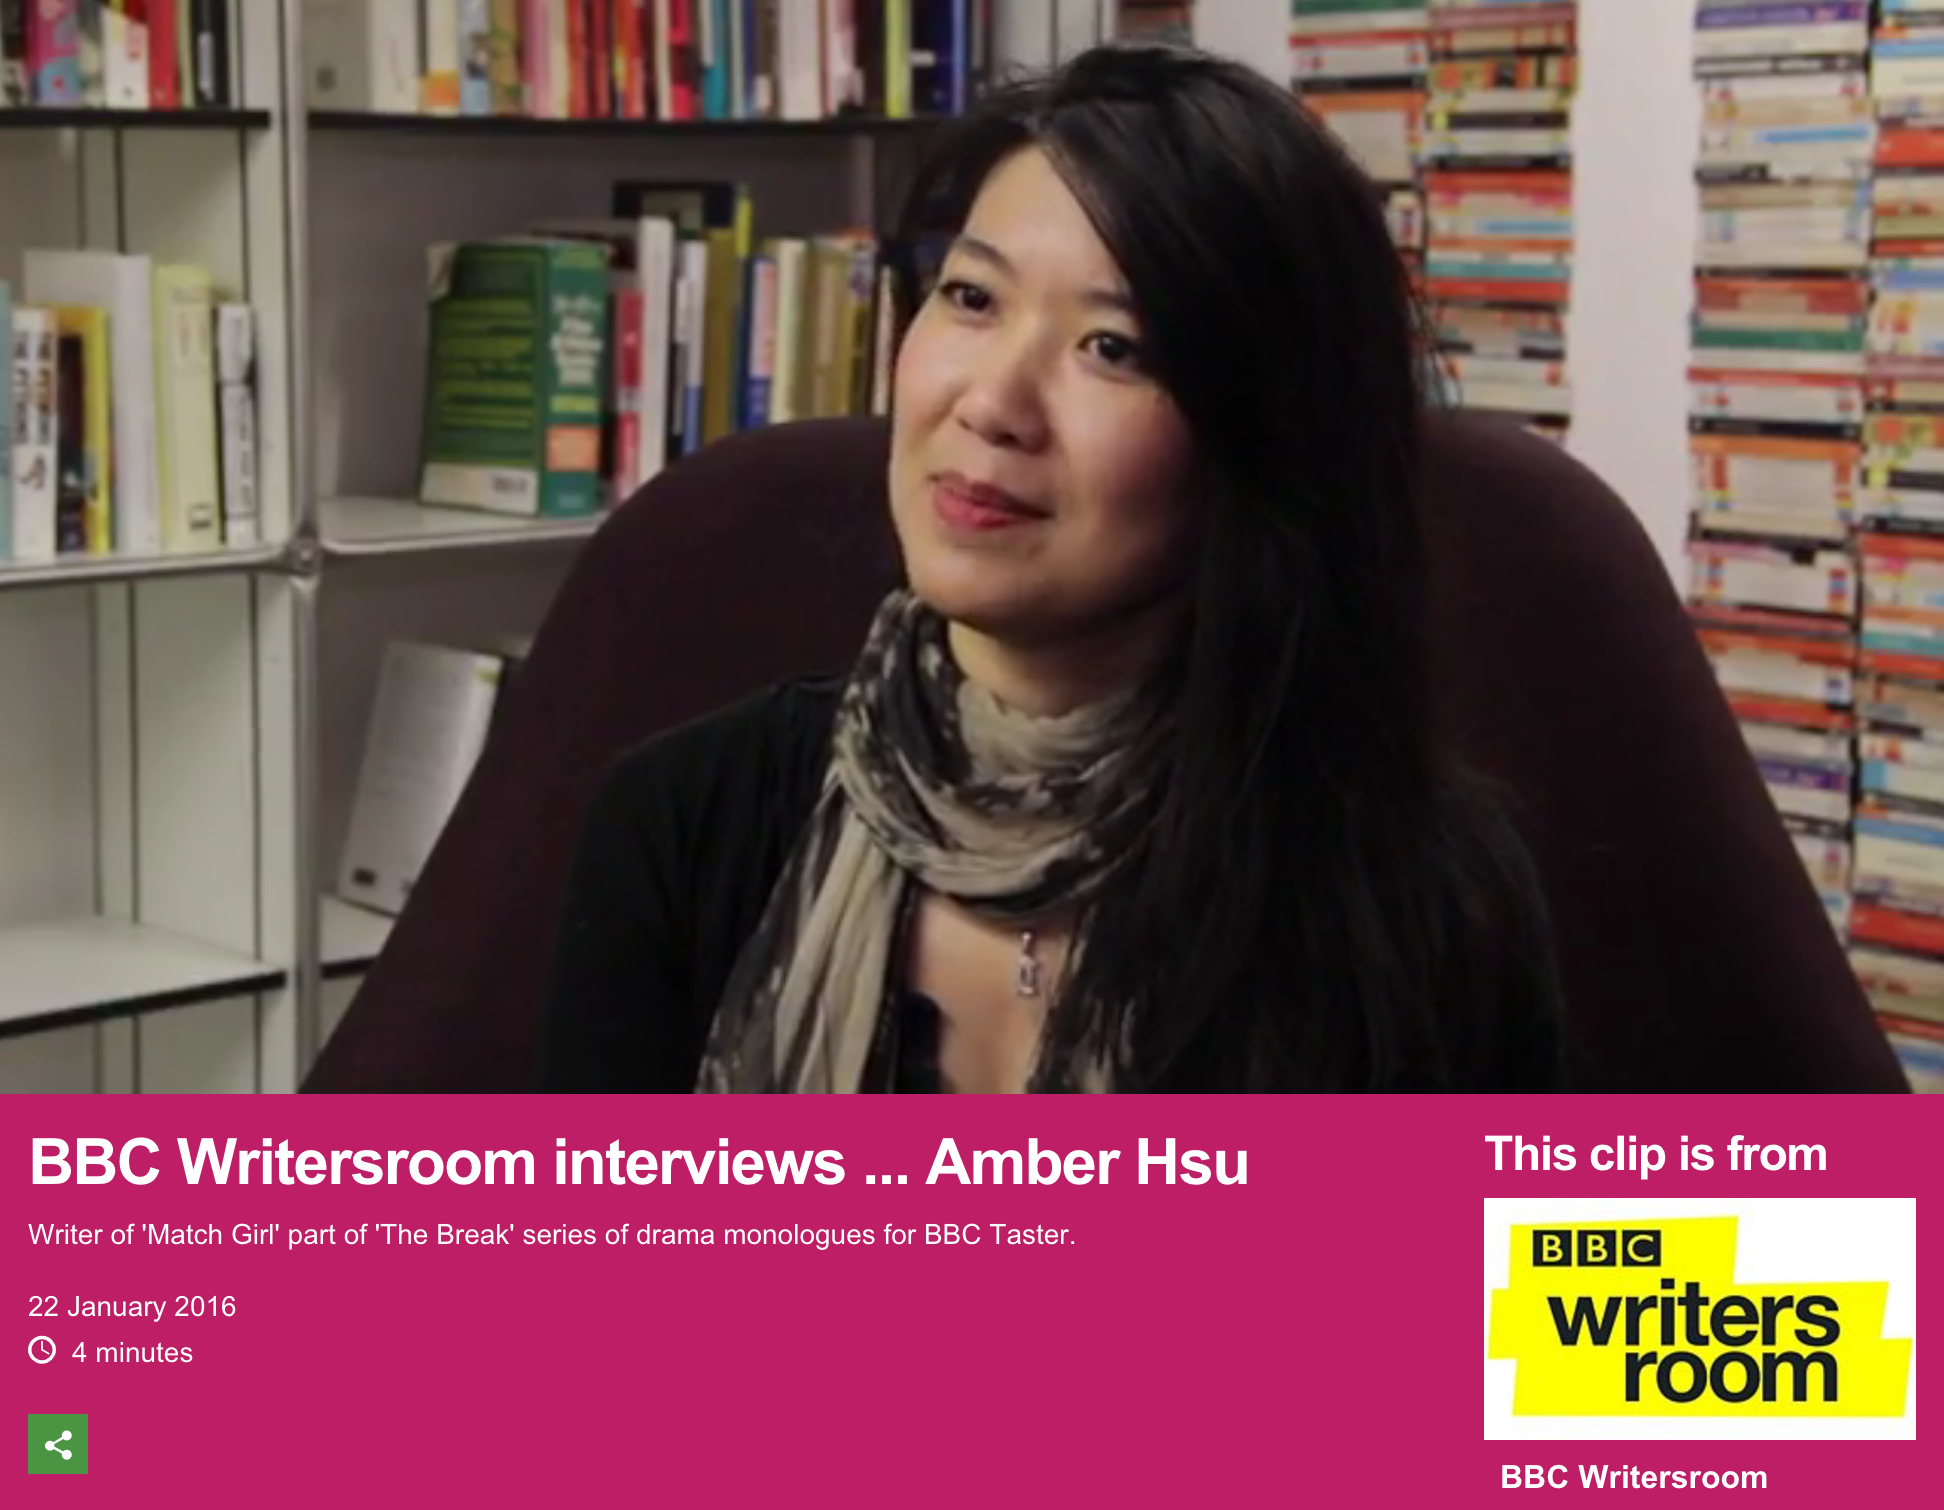 BBC_WritersRoom_Hsu_Amber_Interview_Preview_1.06